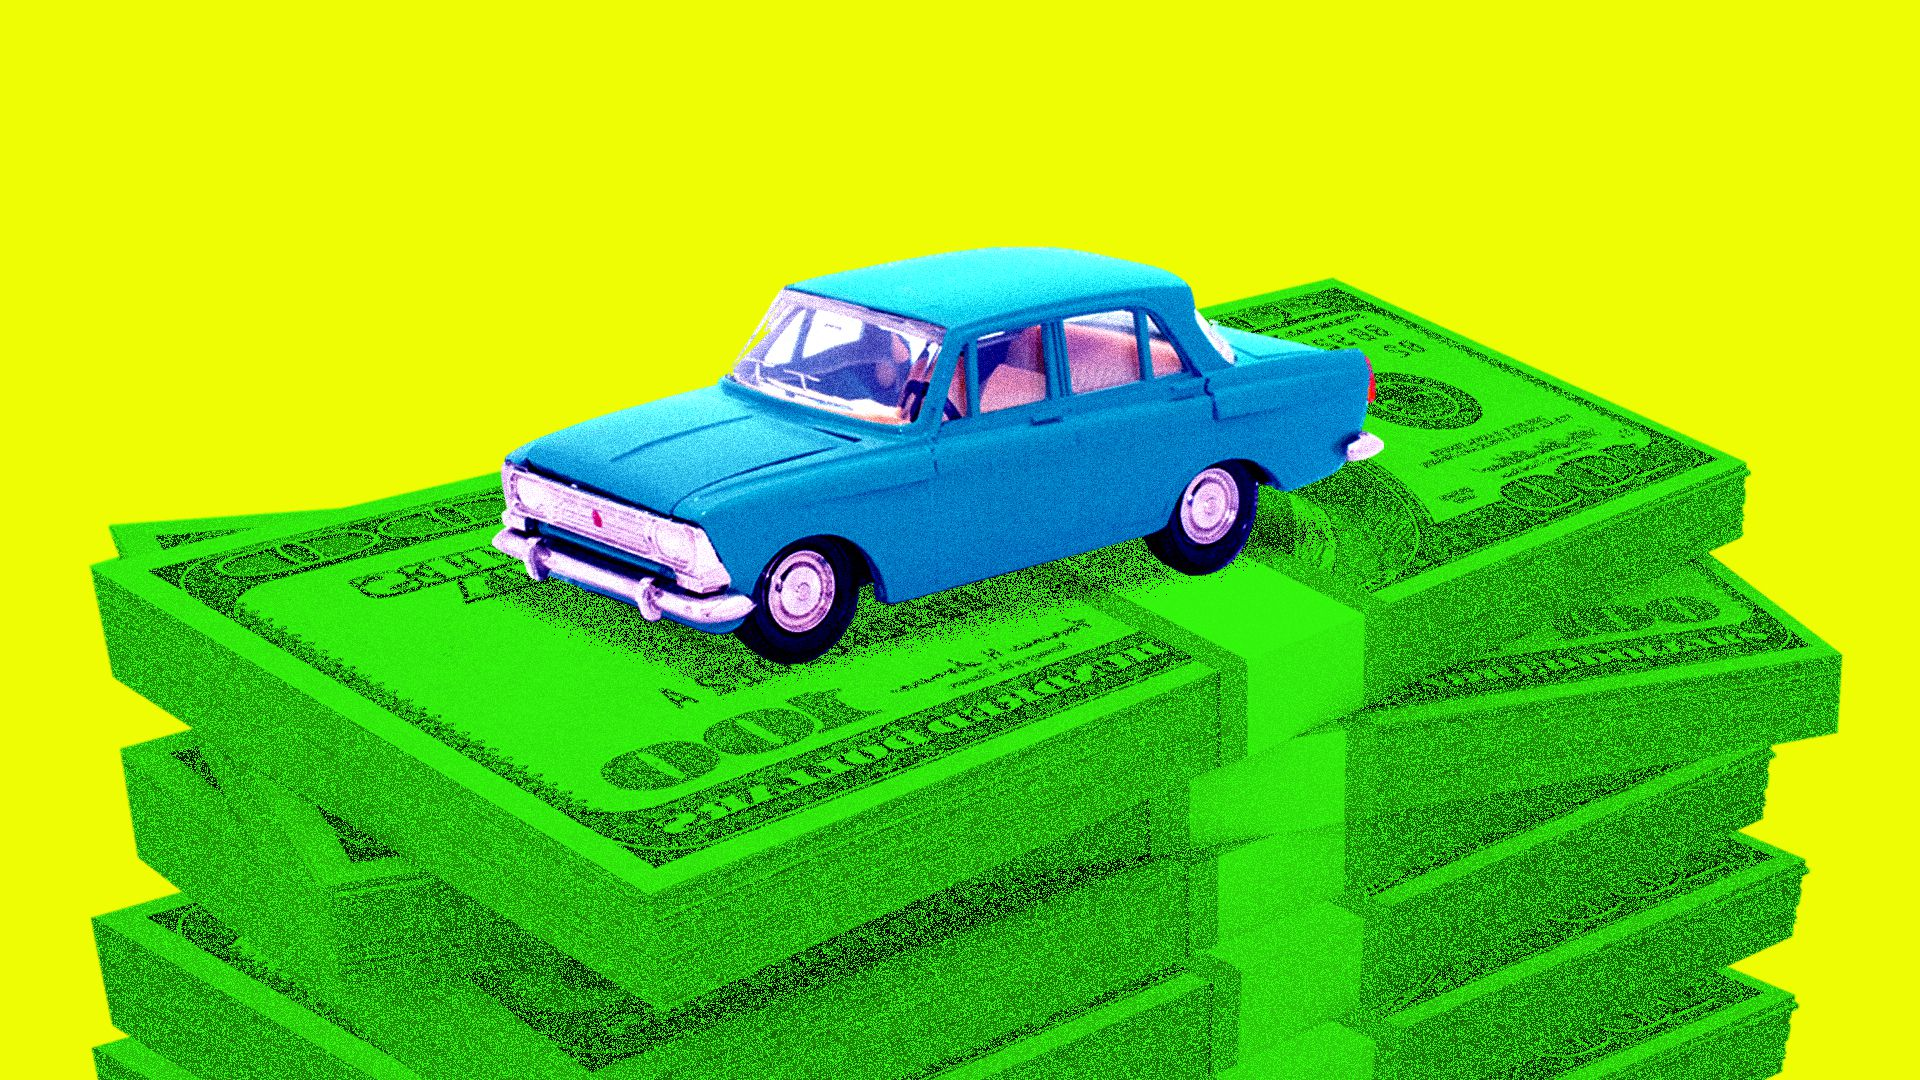 A blue car sitting atop a pile of money